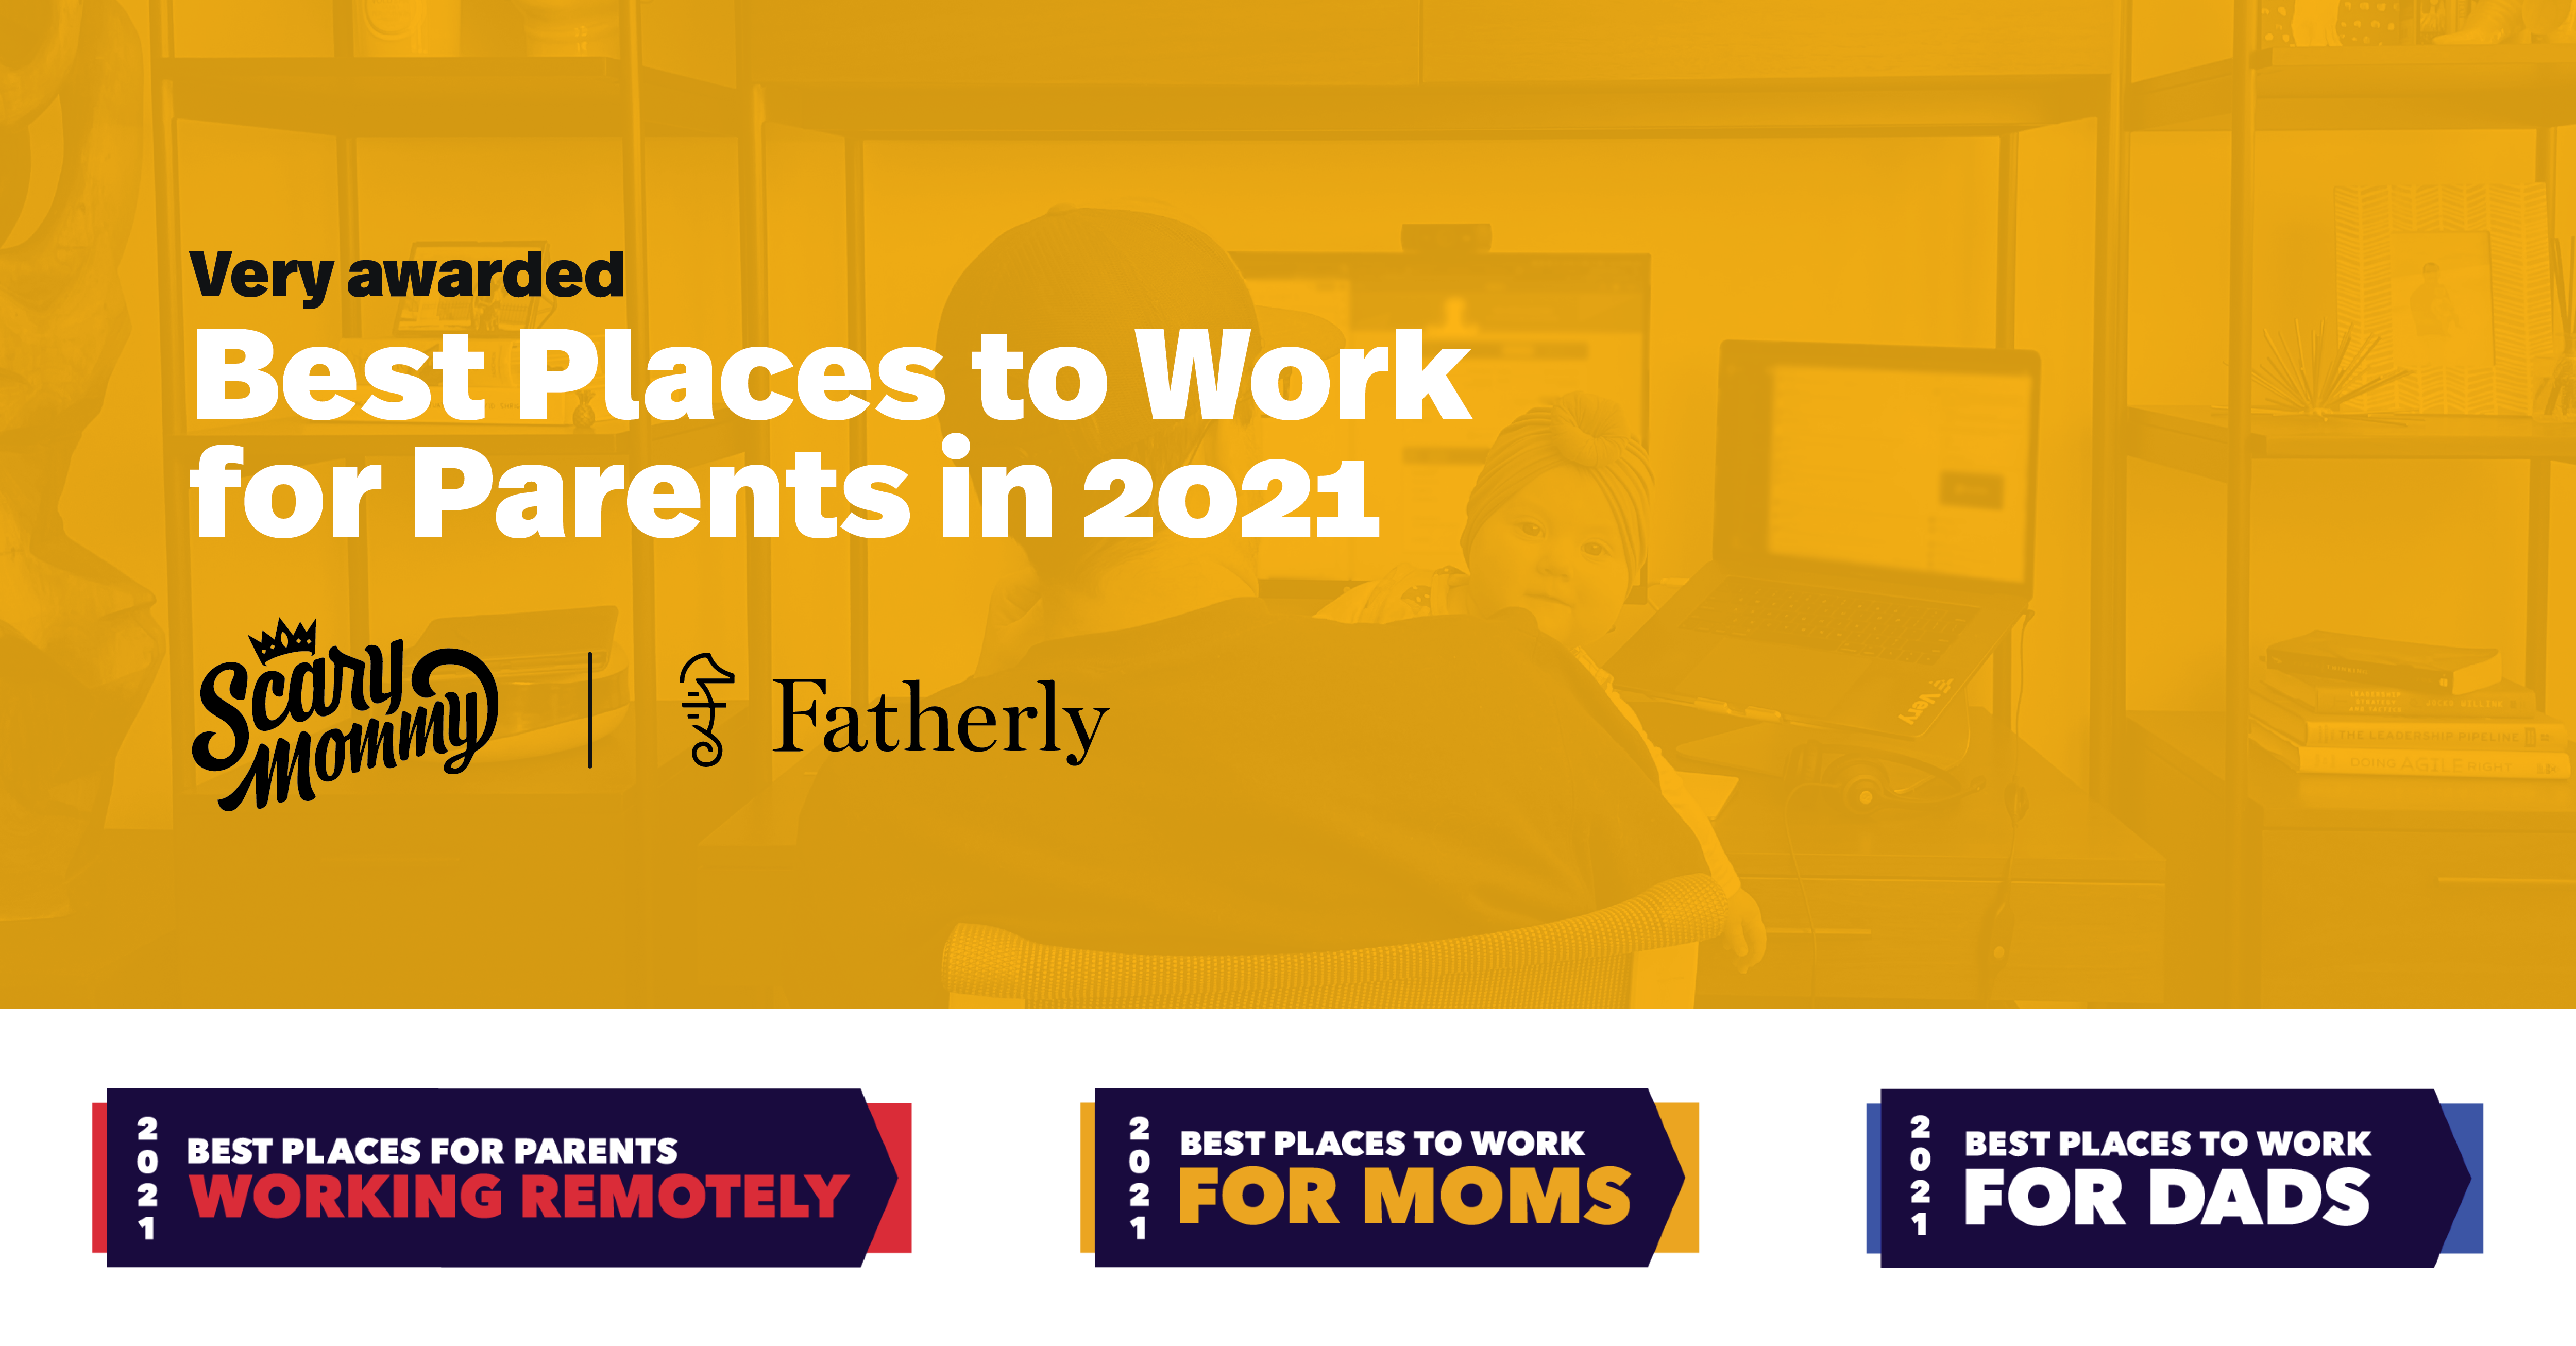 Very Named Among Best Places to Work for Parents